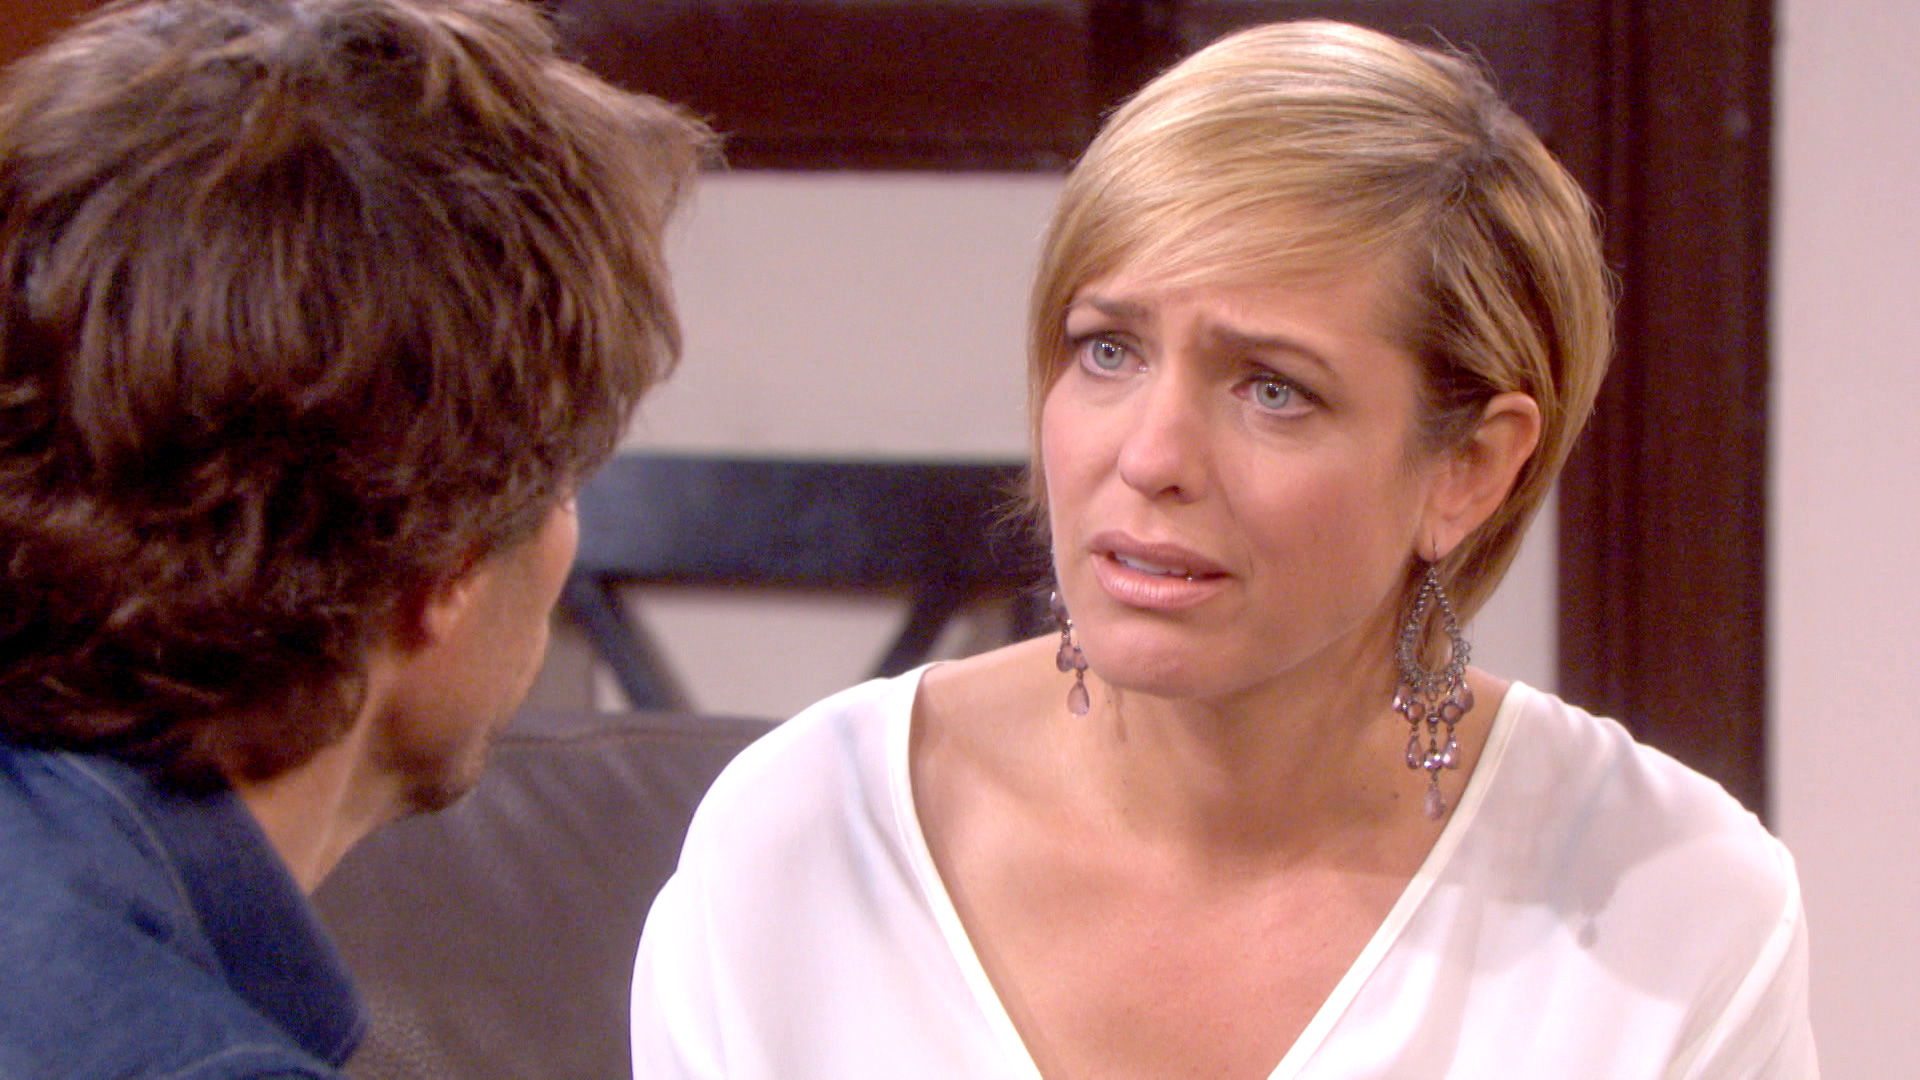 Daniel confronts Nicole with the truth!